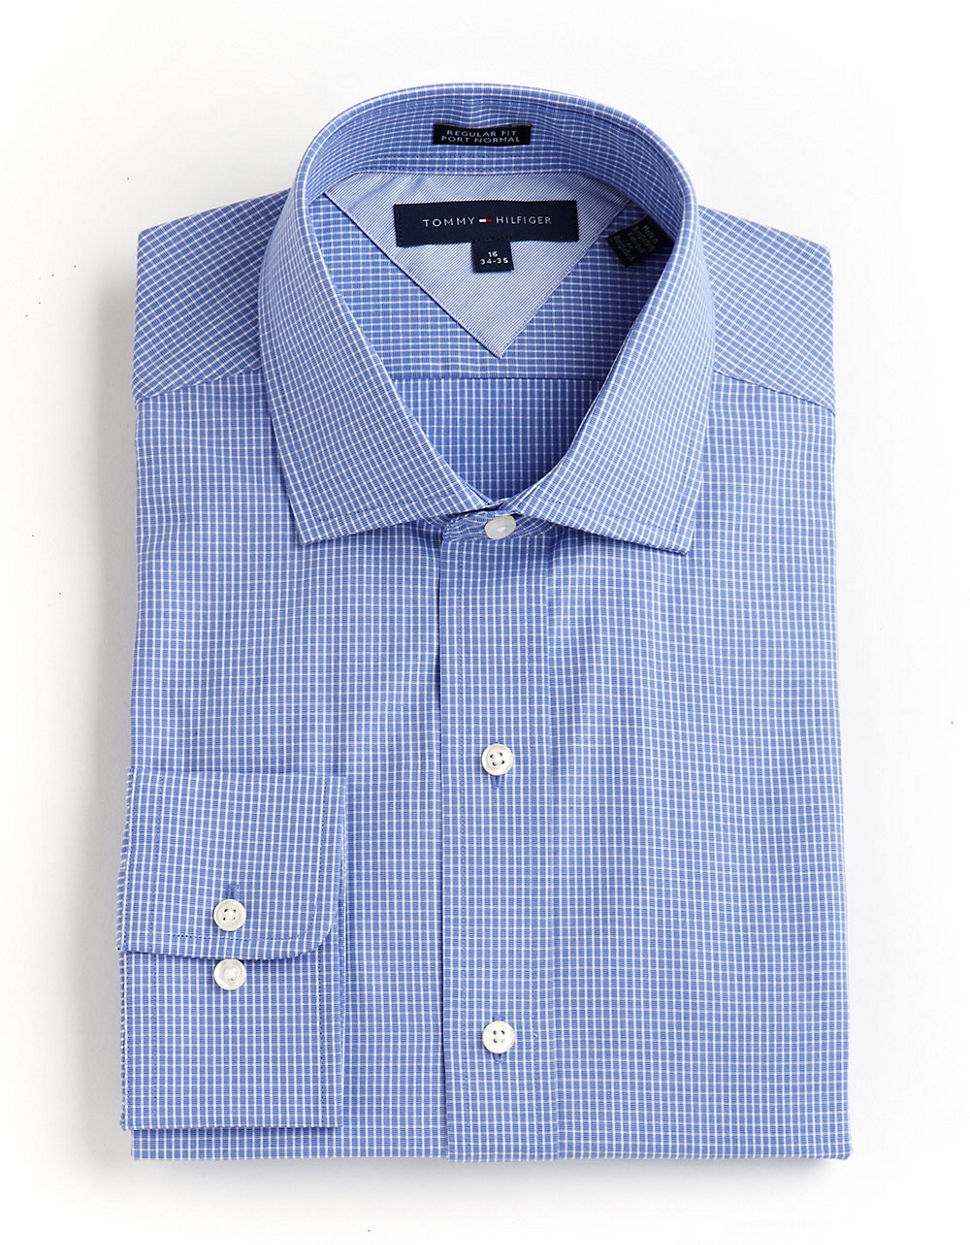 Tommy hilfiger Tommy Hilfiger Ls Regular Fit Dress Shirt blue 16  34/35